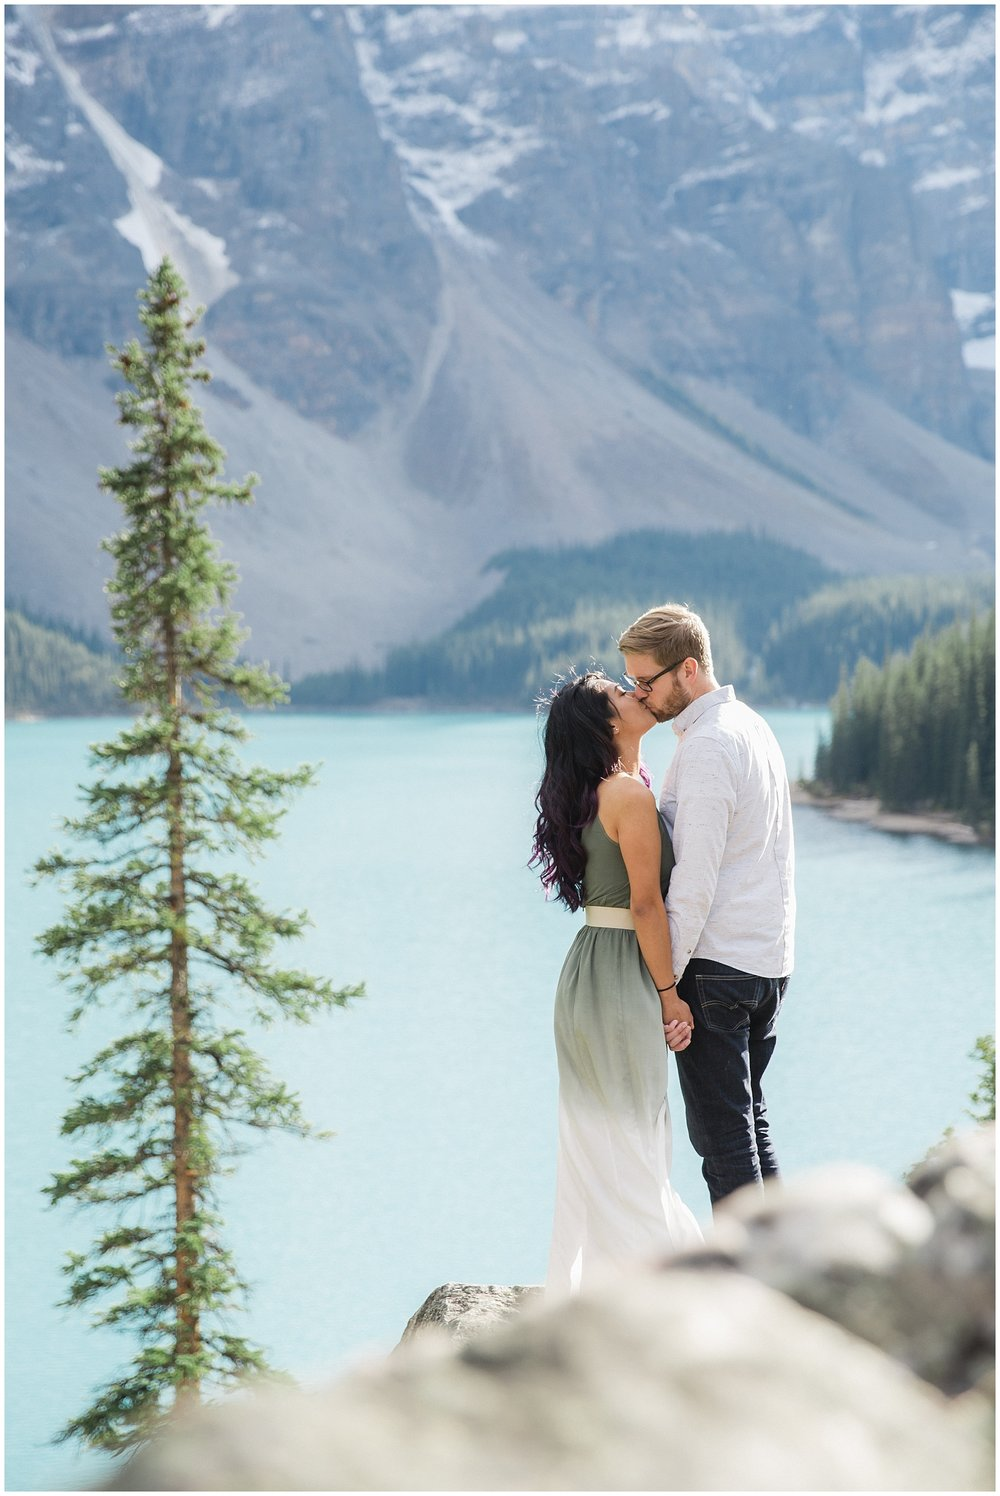 Lake_Moraine_Engagement_Photography_JandC_31_blog.jpg